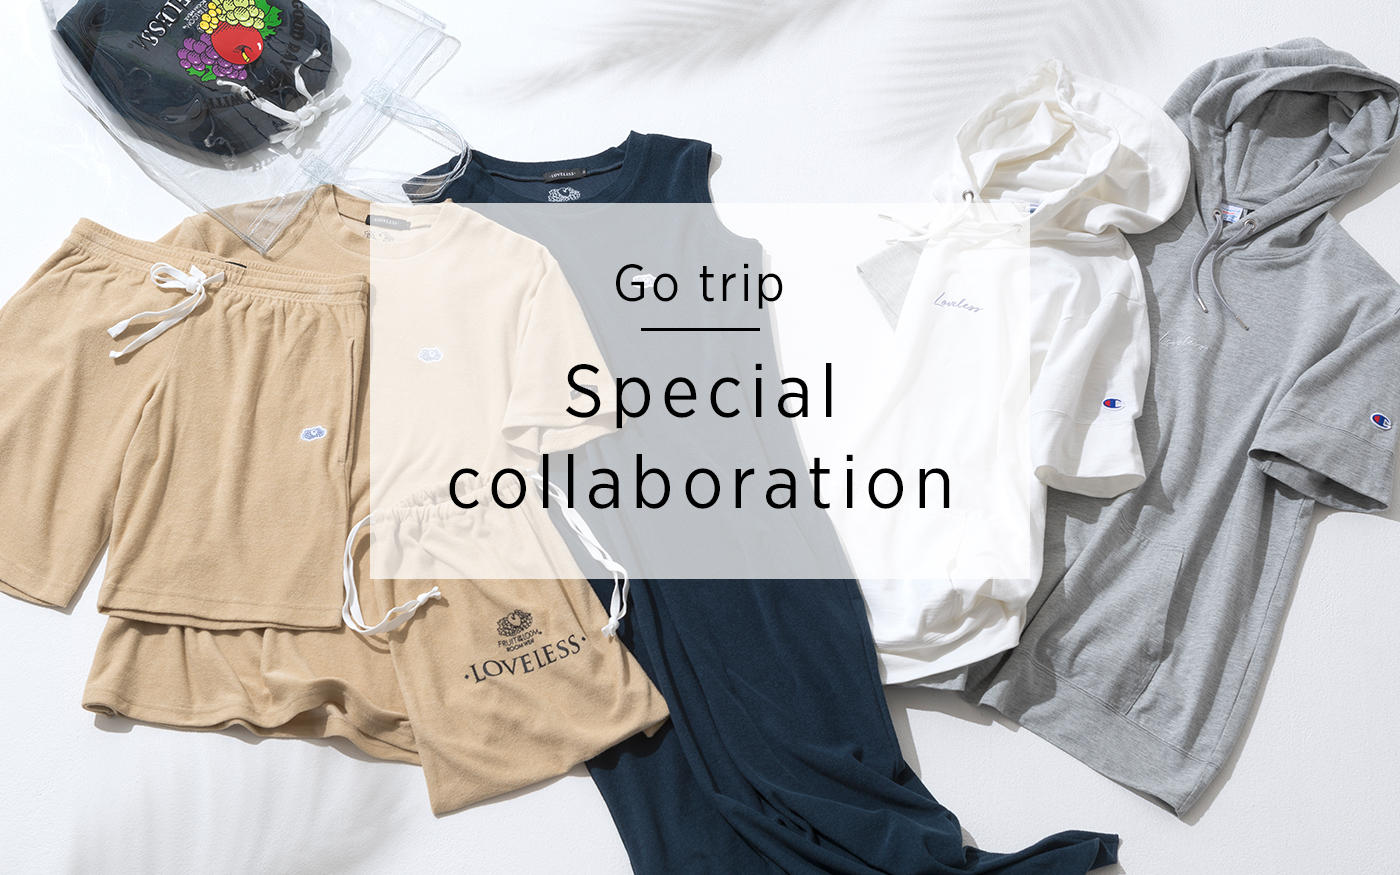 Go trip Special collaboration